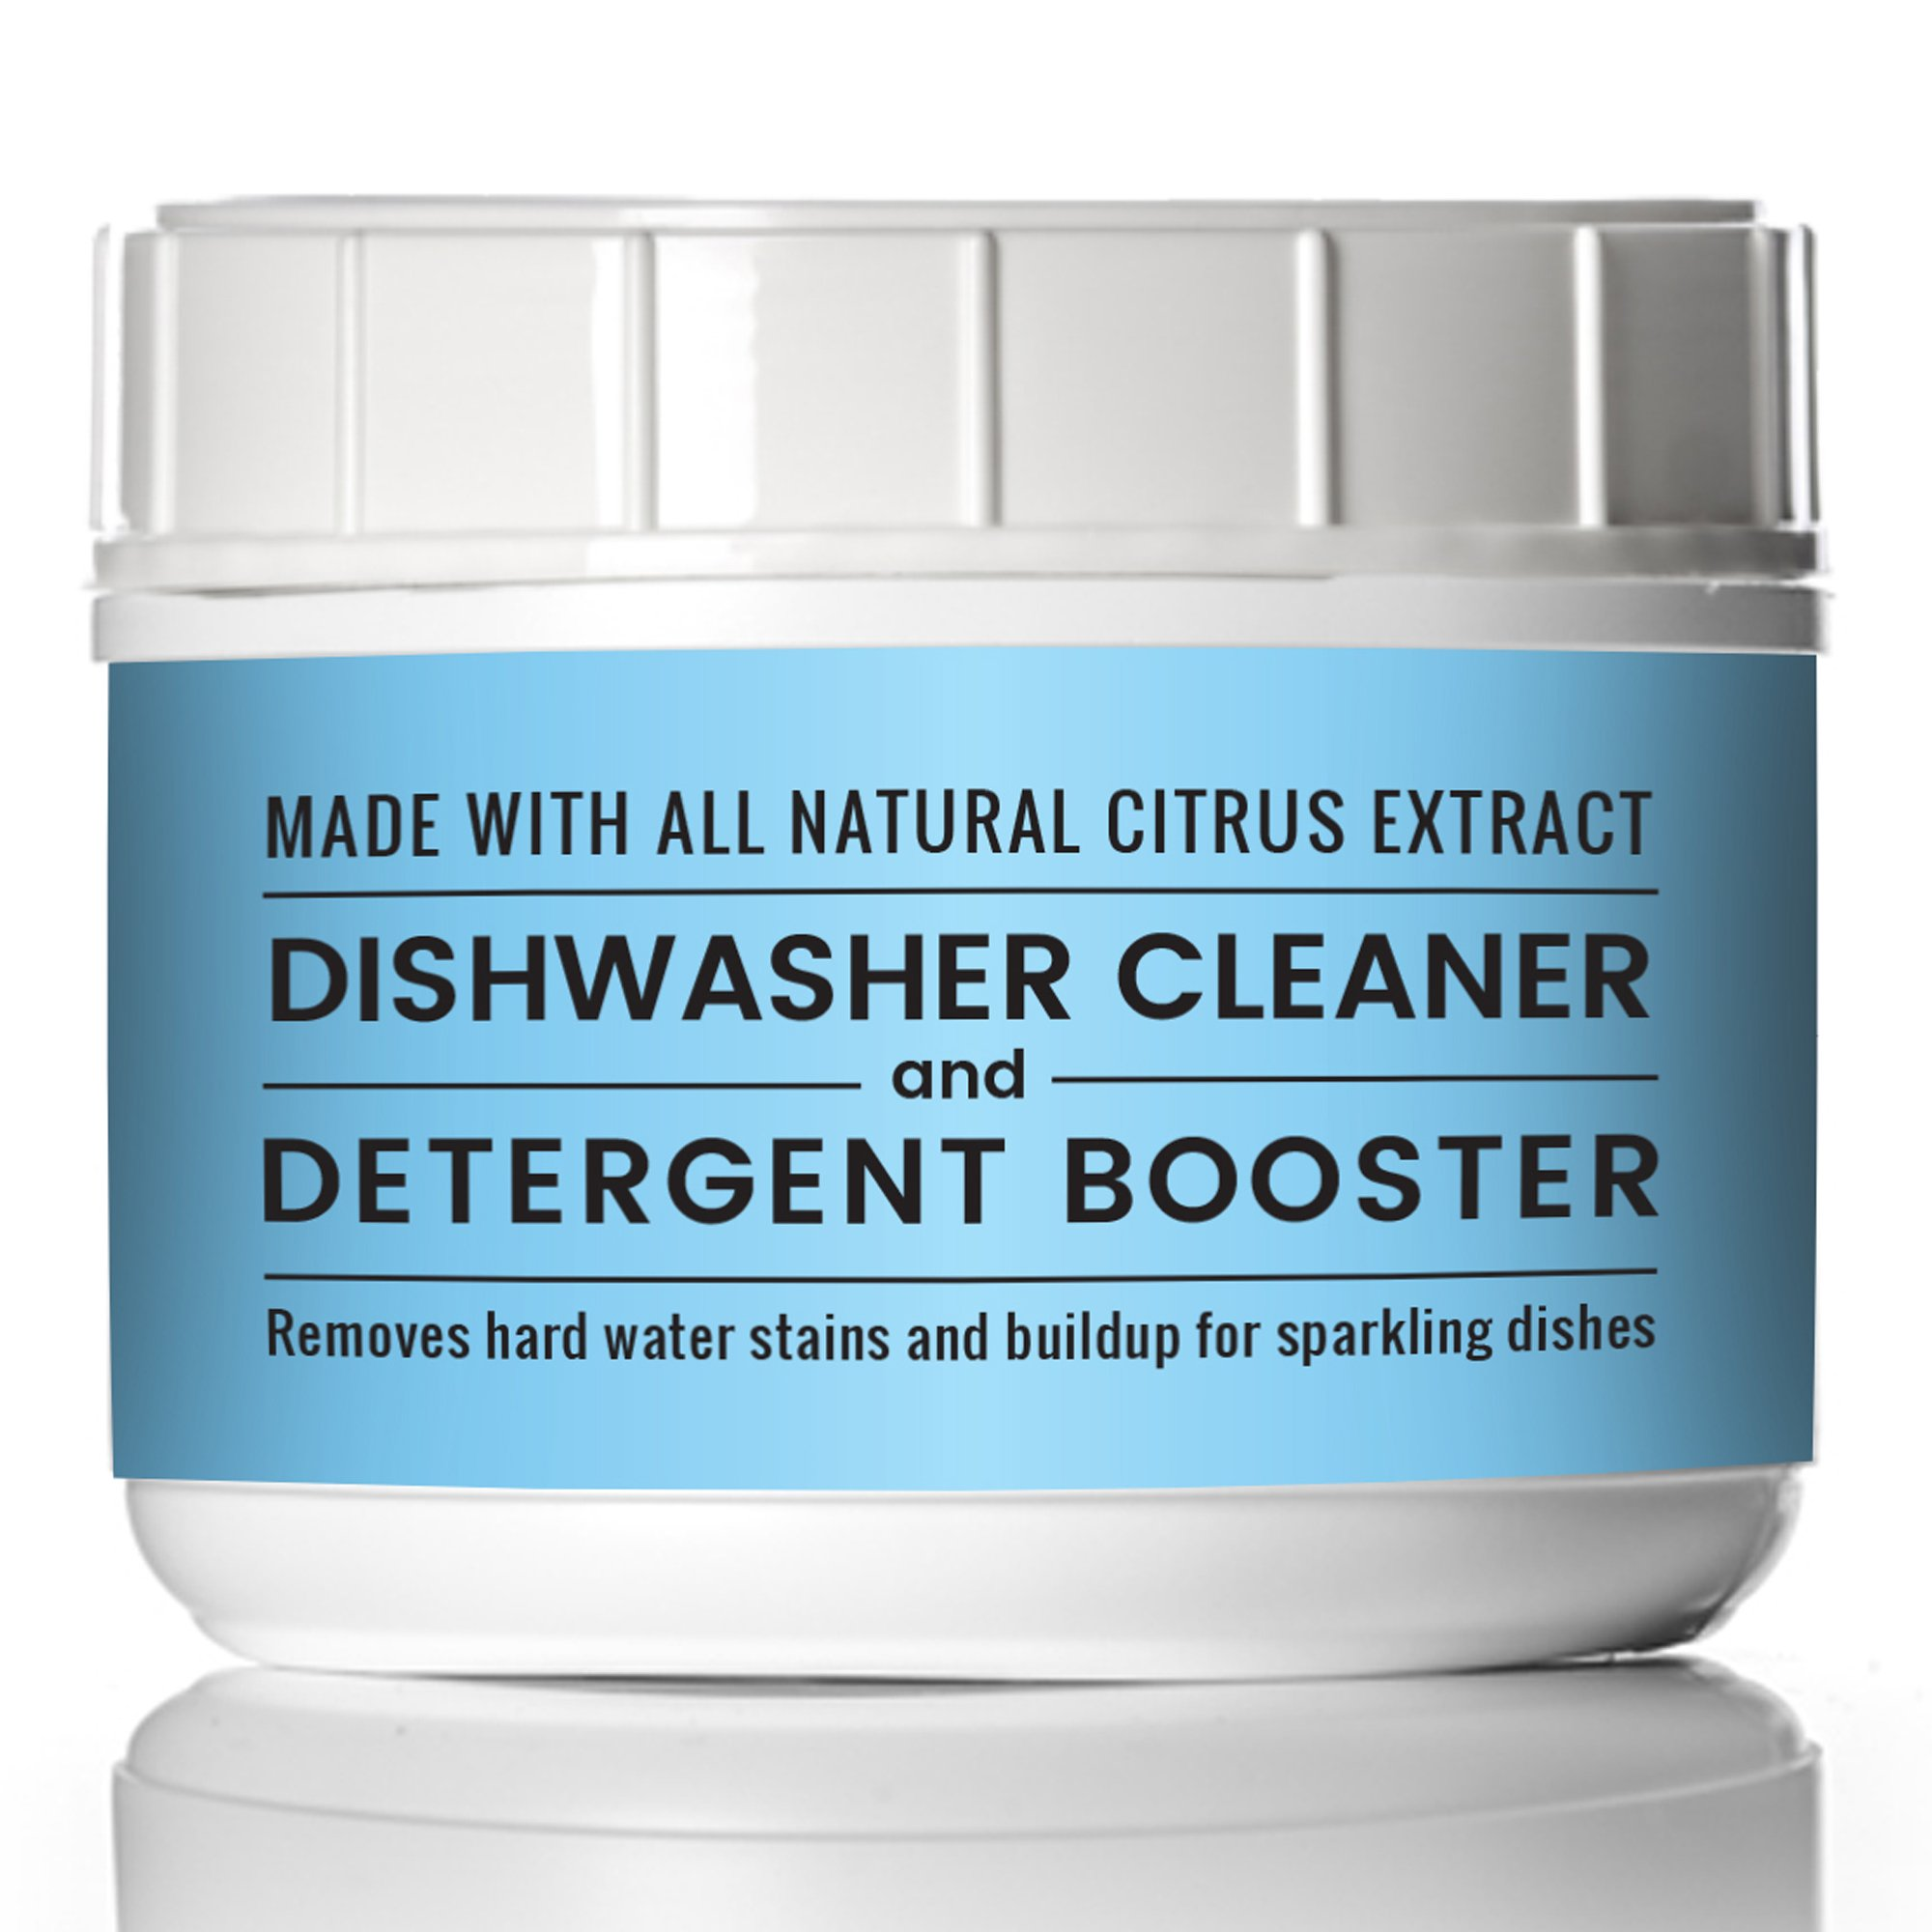 Pure Organic Dishwasher Cleaner & Detergent Booster 32 oz Dishwasher Additive, All Natural, Resealable Tub with Scoop (2 lb (32 oz))